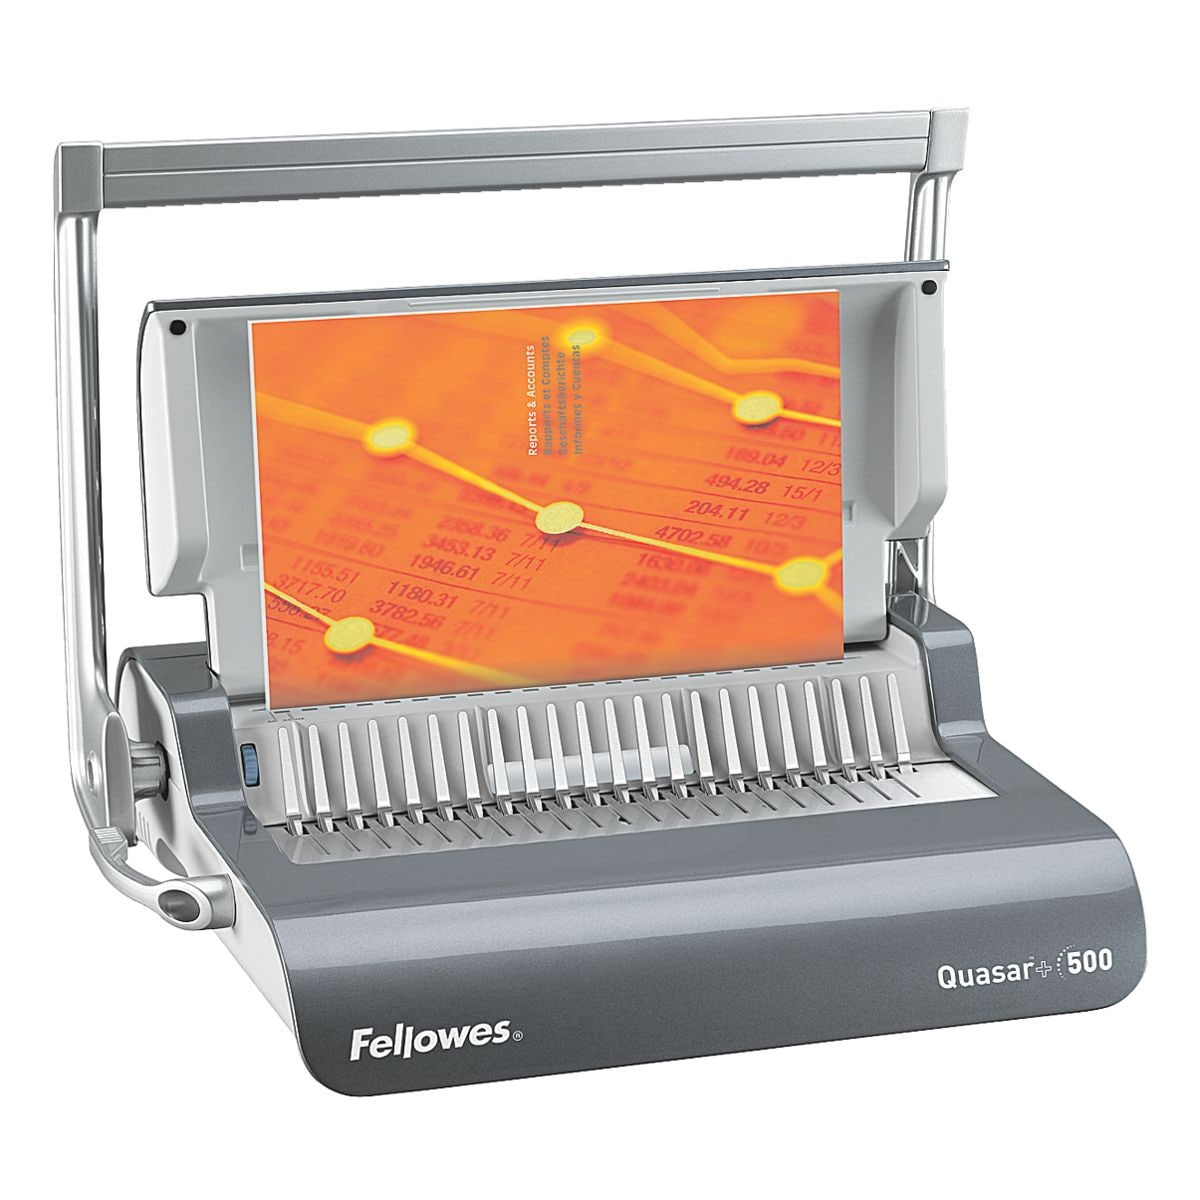 Fellowes Bindemaschine »Quasar+«